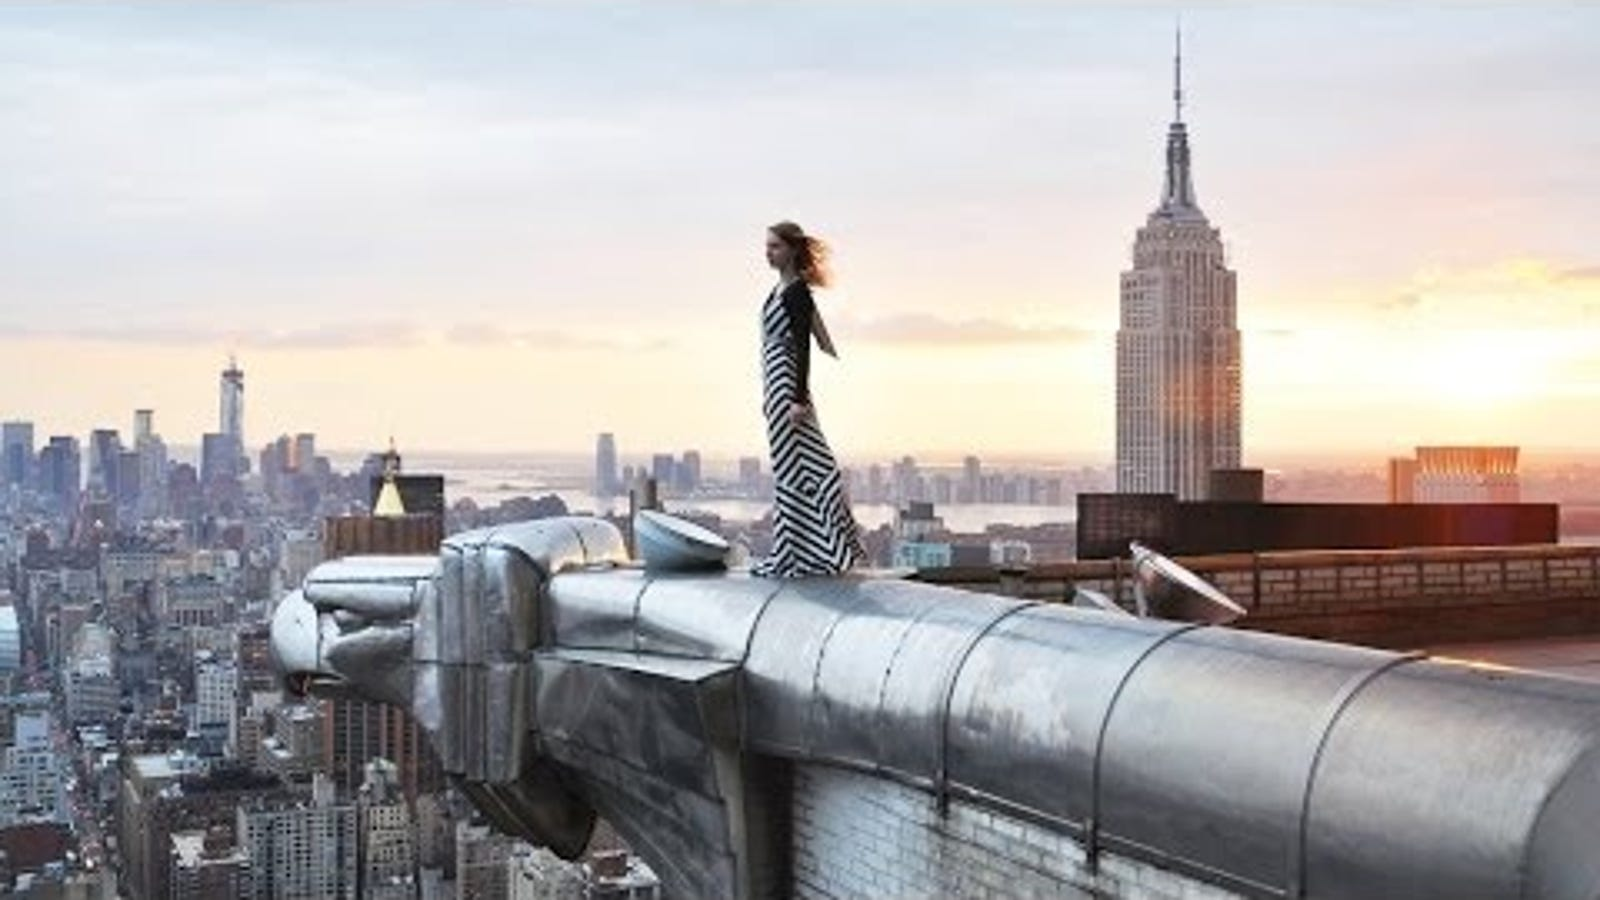 Sitting on top of the world never looked so good... and terrifying